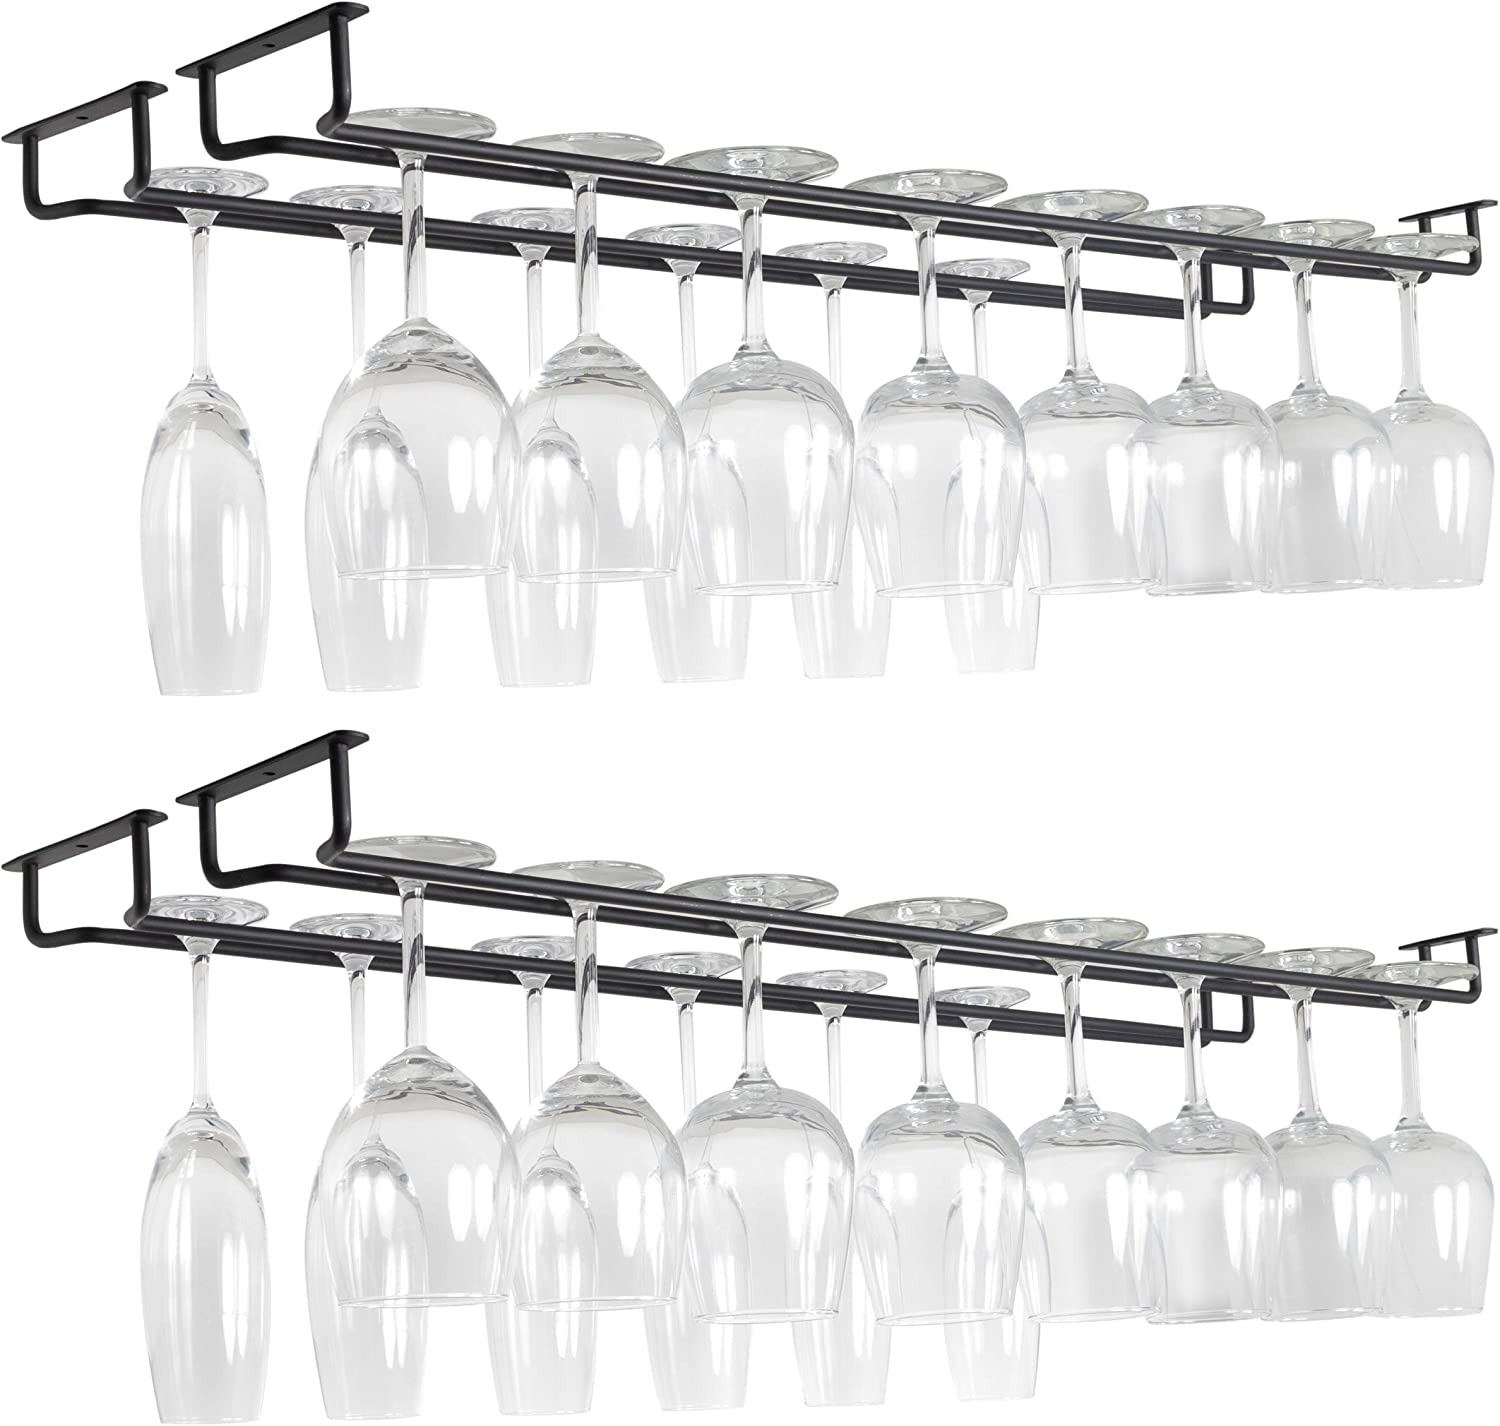 Wallniture Brix 30 Inches Wine Glass Rack Under Cabinet Organization and Storage Set of 4, Black Wine Glasses Holder